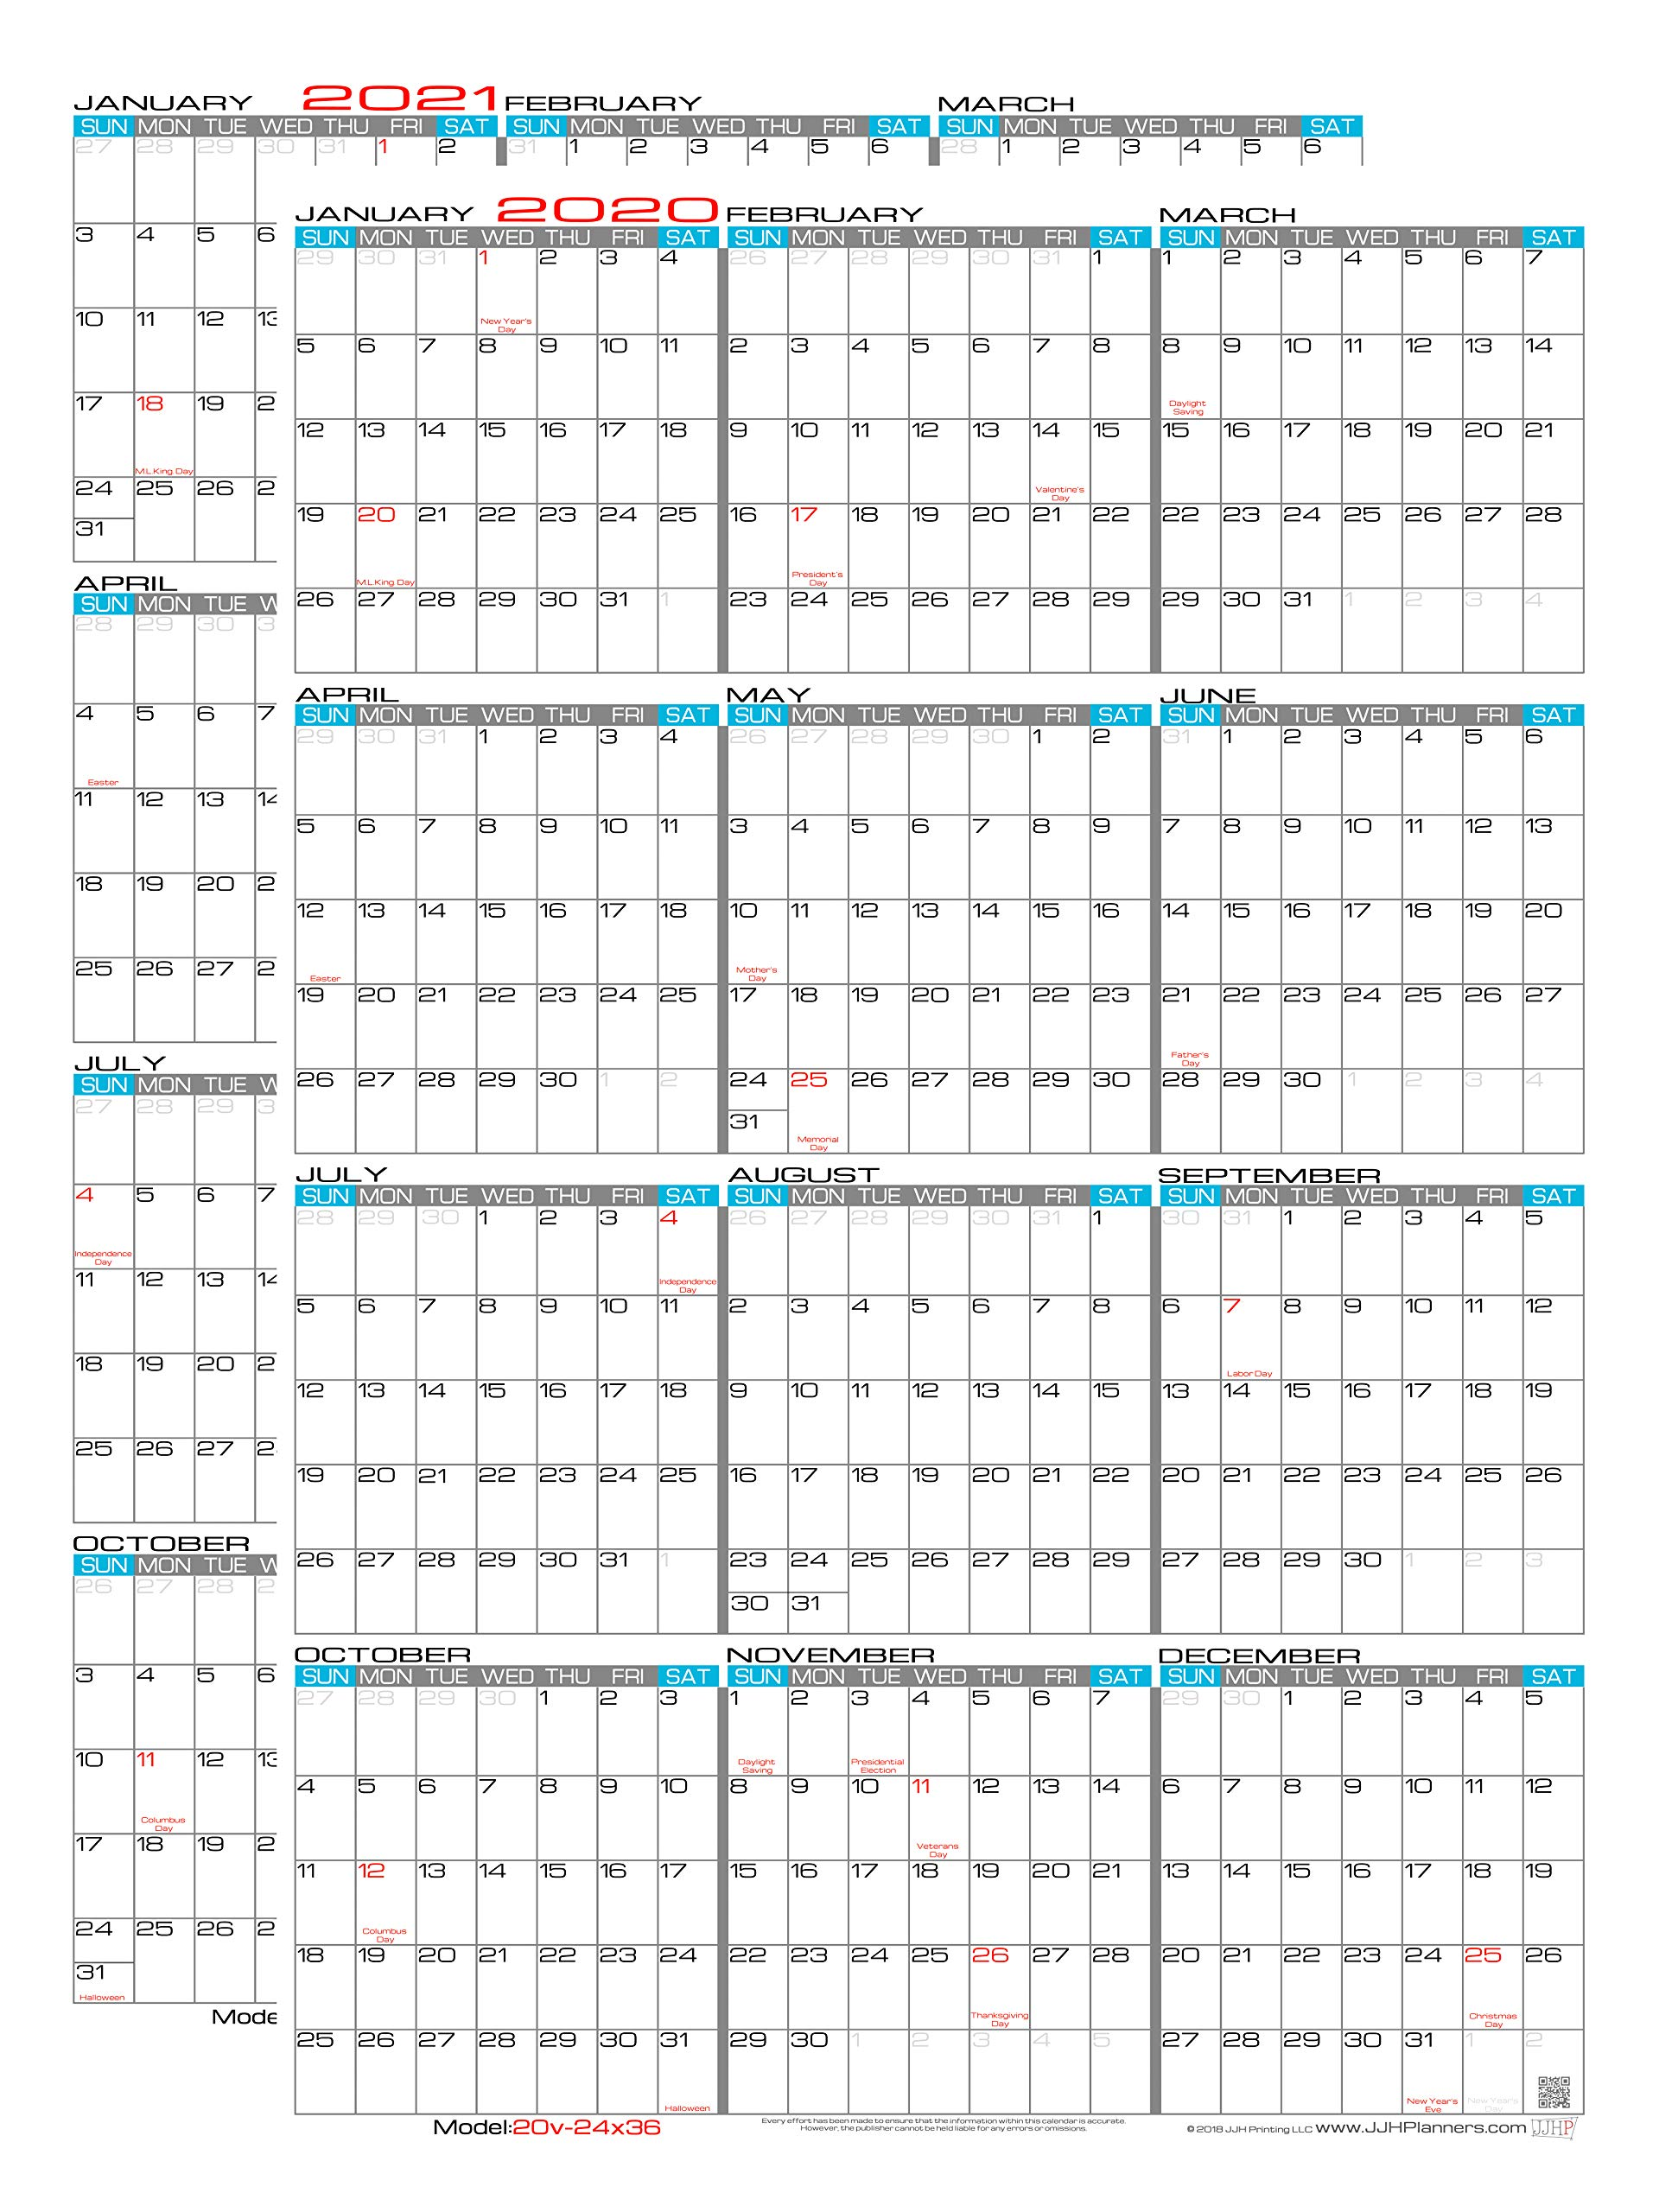 JJH Planners - Set of 2 - Laminated - 24'' X 36'' Large 2020 & 2021 Erasable Wall Calendars - Vertical 12 Month Yearly Annual Planners (2020 & 2021) by JJH Planners